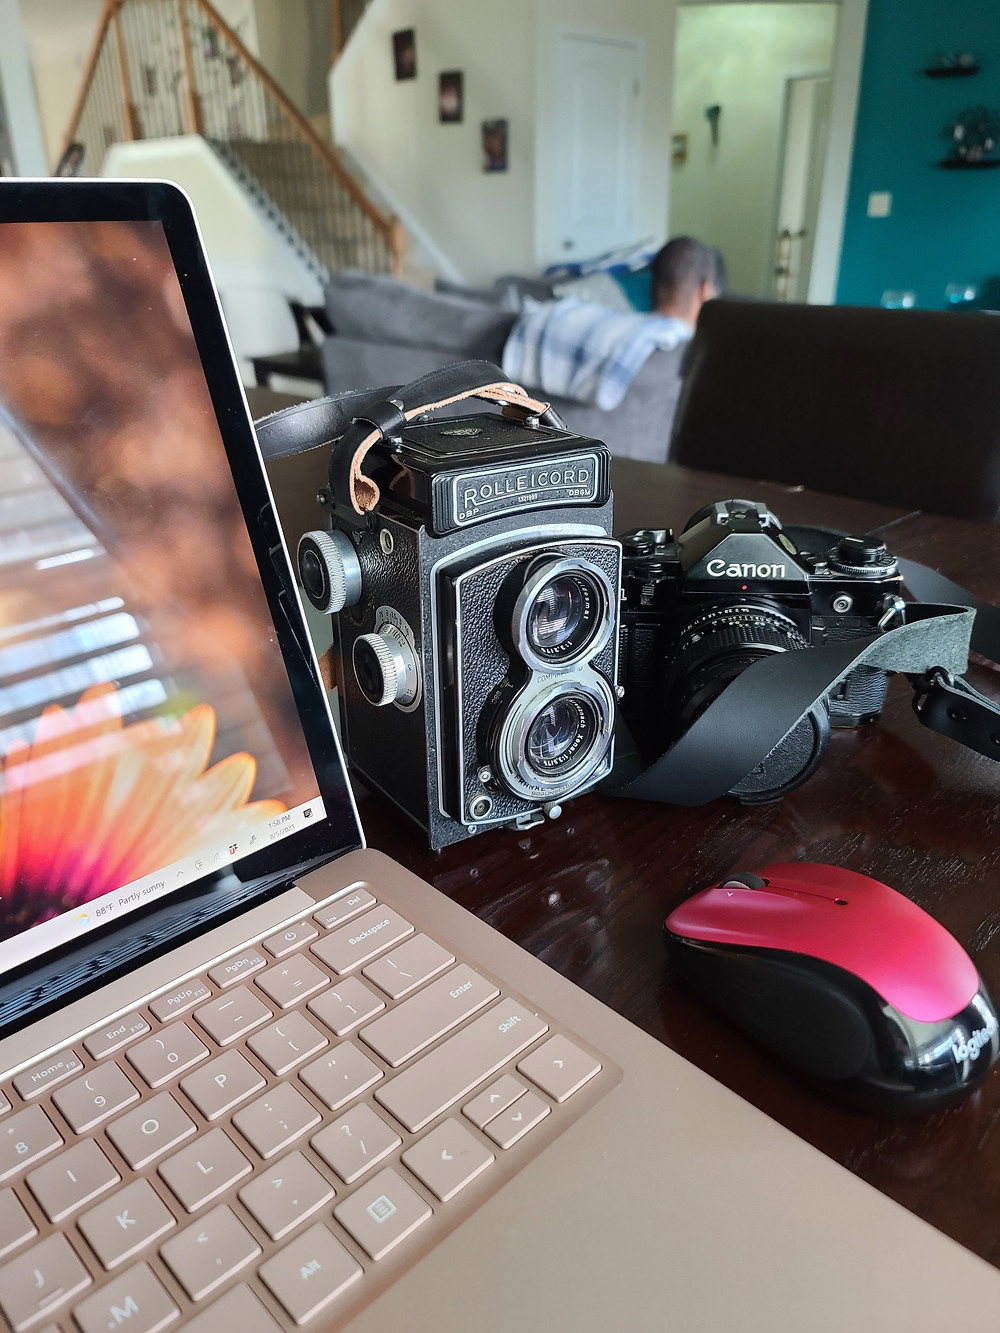 At the table with my rose gold laptop, Rolleicord, and Canon A-1 35mm camera.